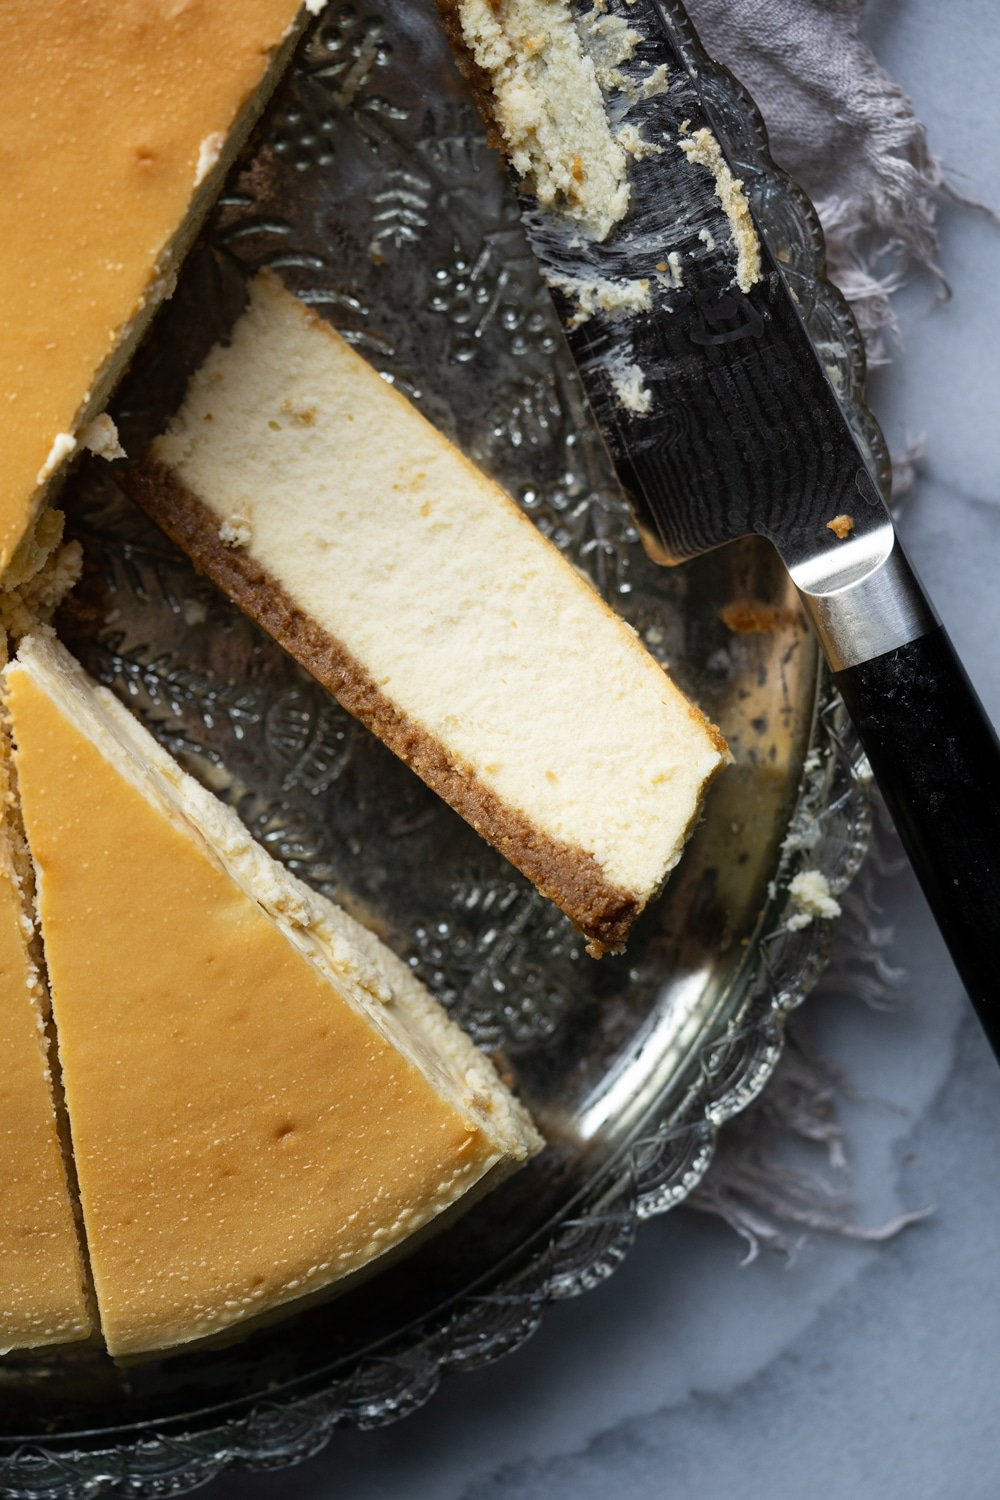 A slice of the best Keto Cheesecake showing a perfect creamy and airy texture